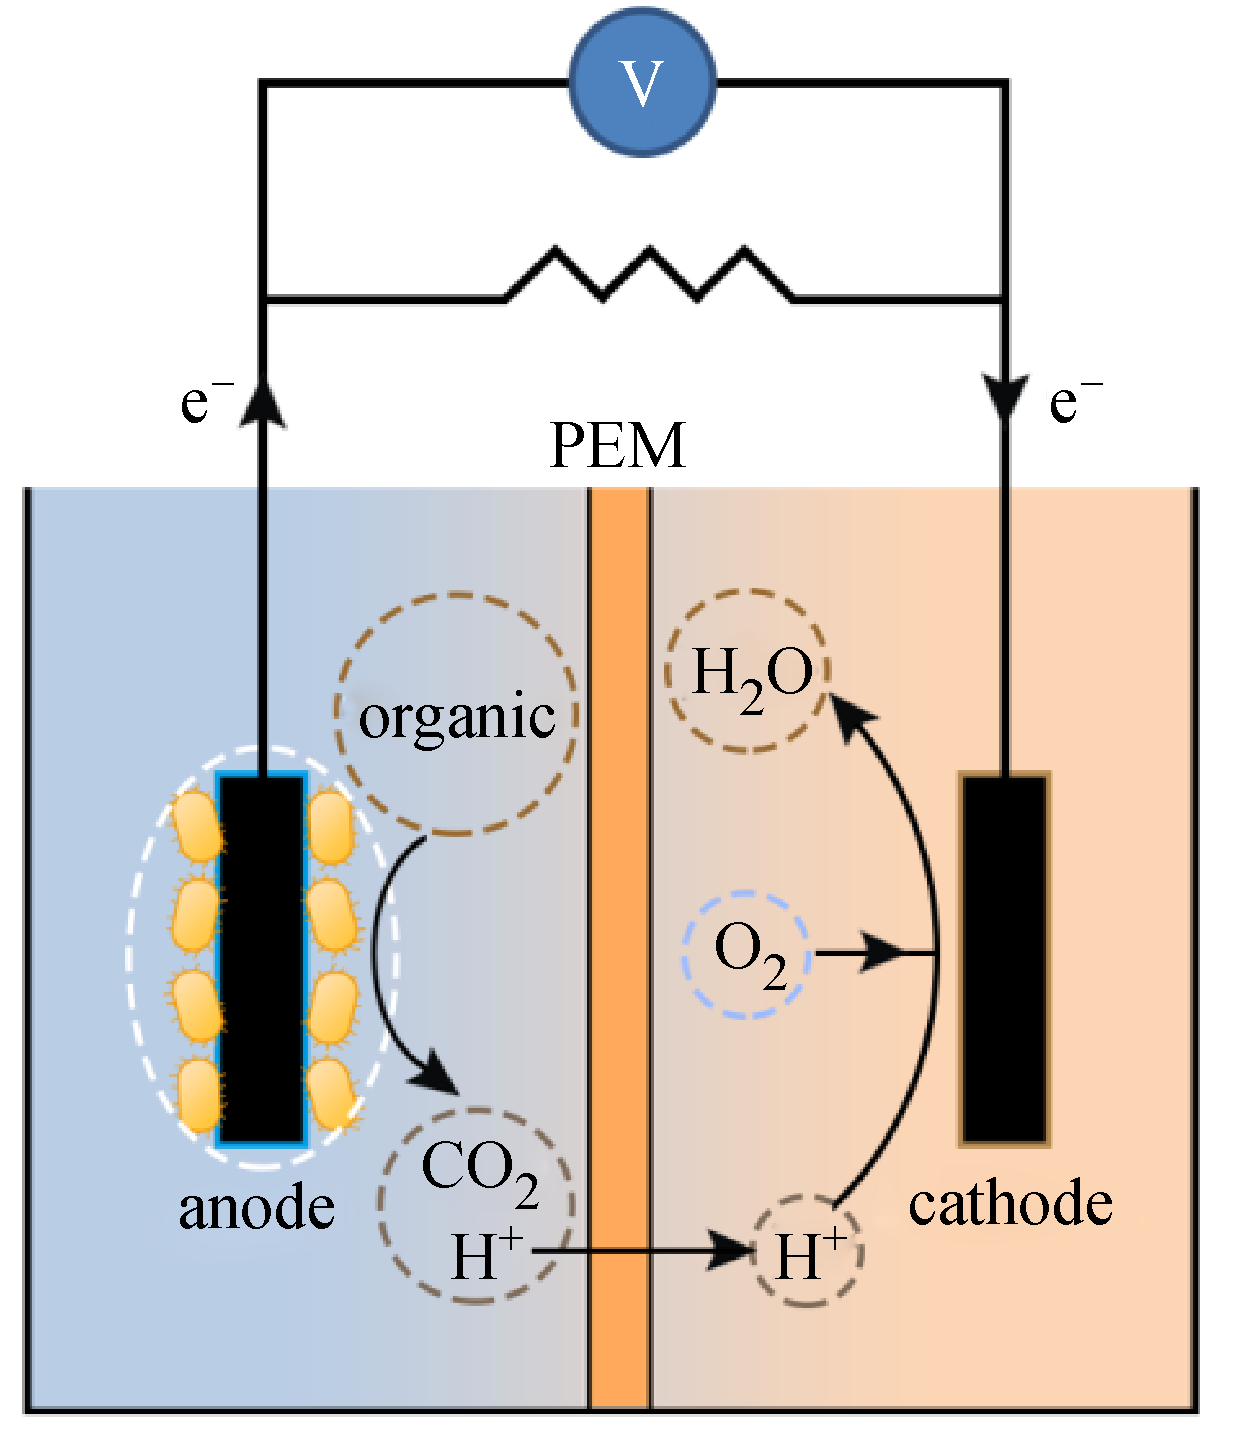 Microbial fuel cell with high content solid wastes as substrates: a